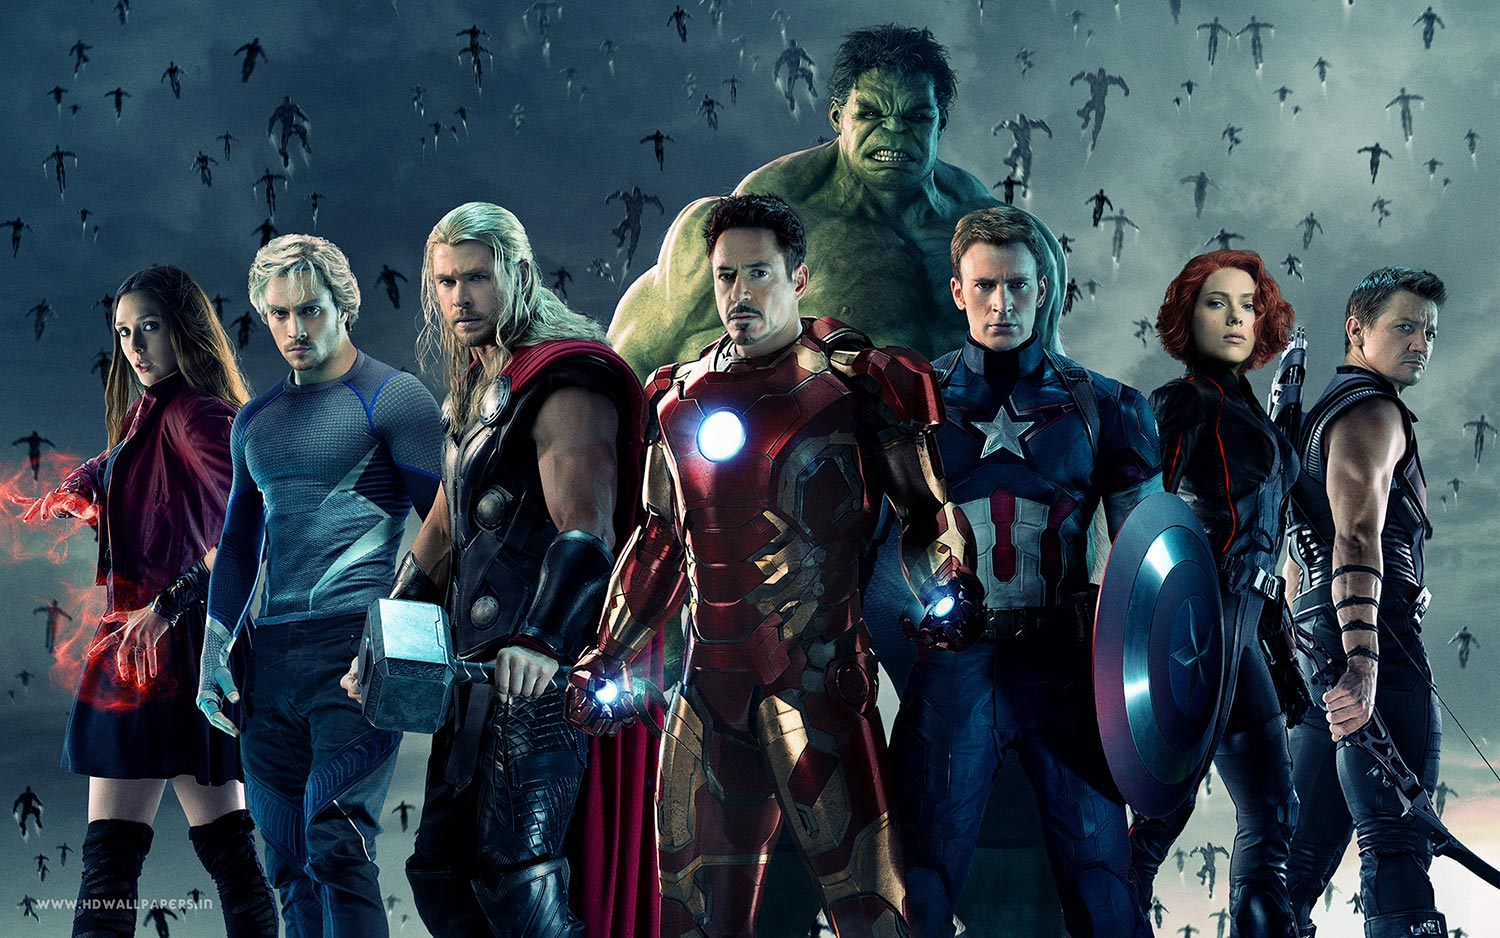 A Review of The Avengers: The Age of Ultron